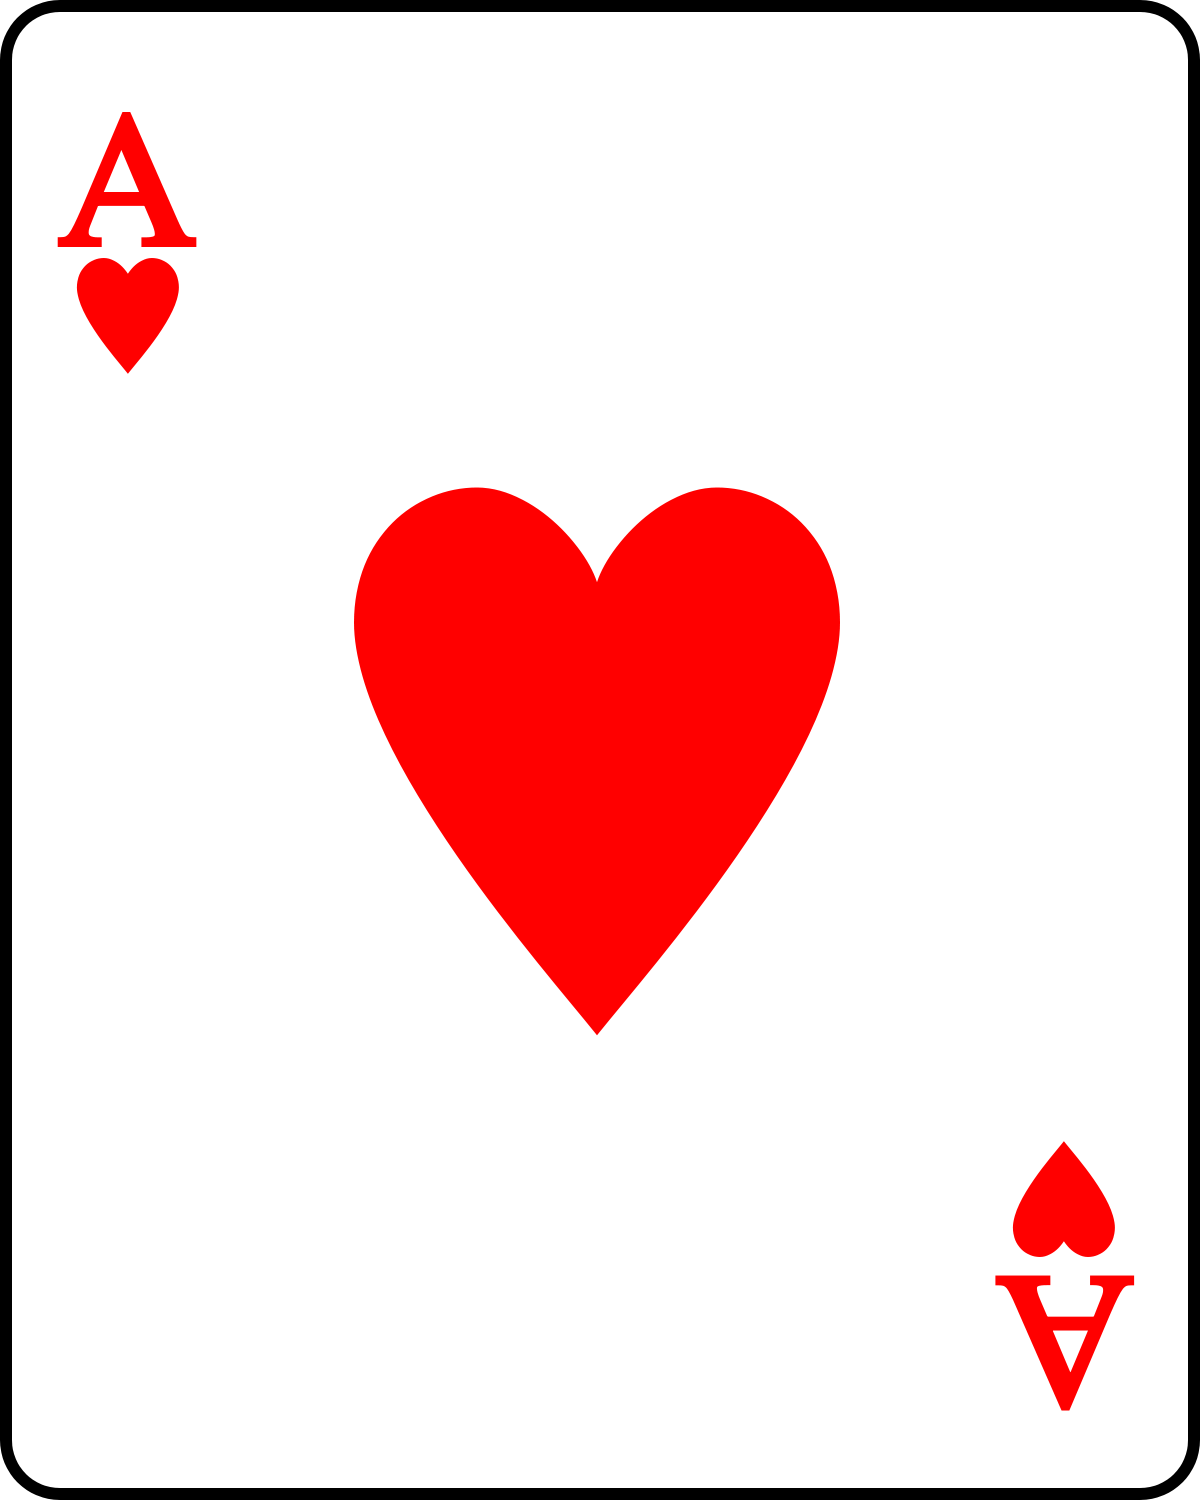 1200x1500 Ace Of Hearts Clipart, Free Ace Of Hearts Clipart